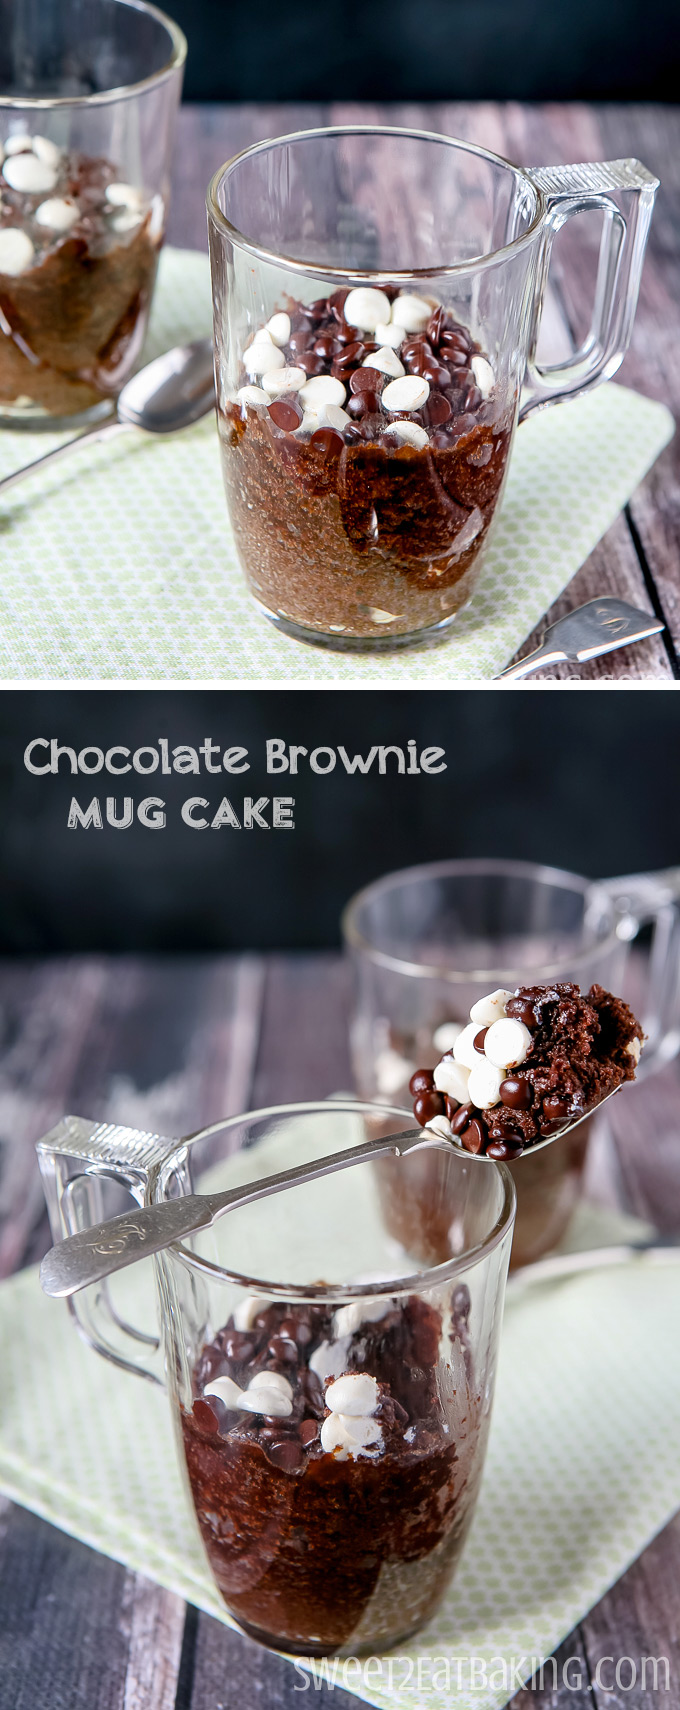 Fudgy Chocolate Brownie Mug Cake Recipe by Sweet2EatBaking.com